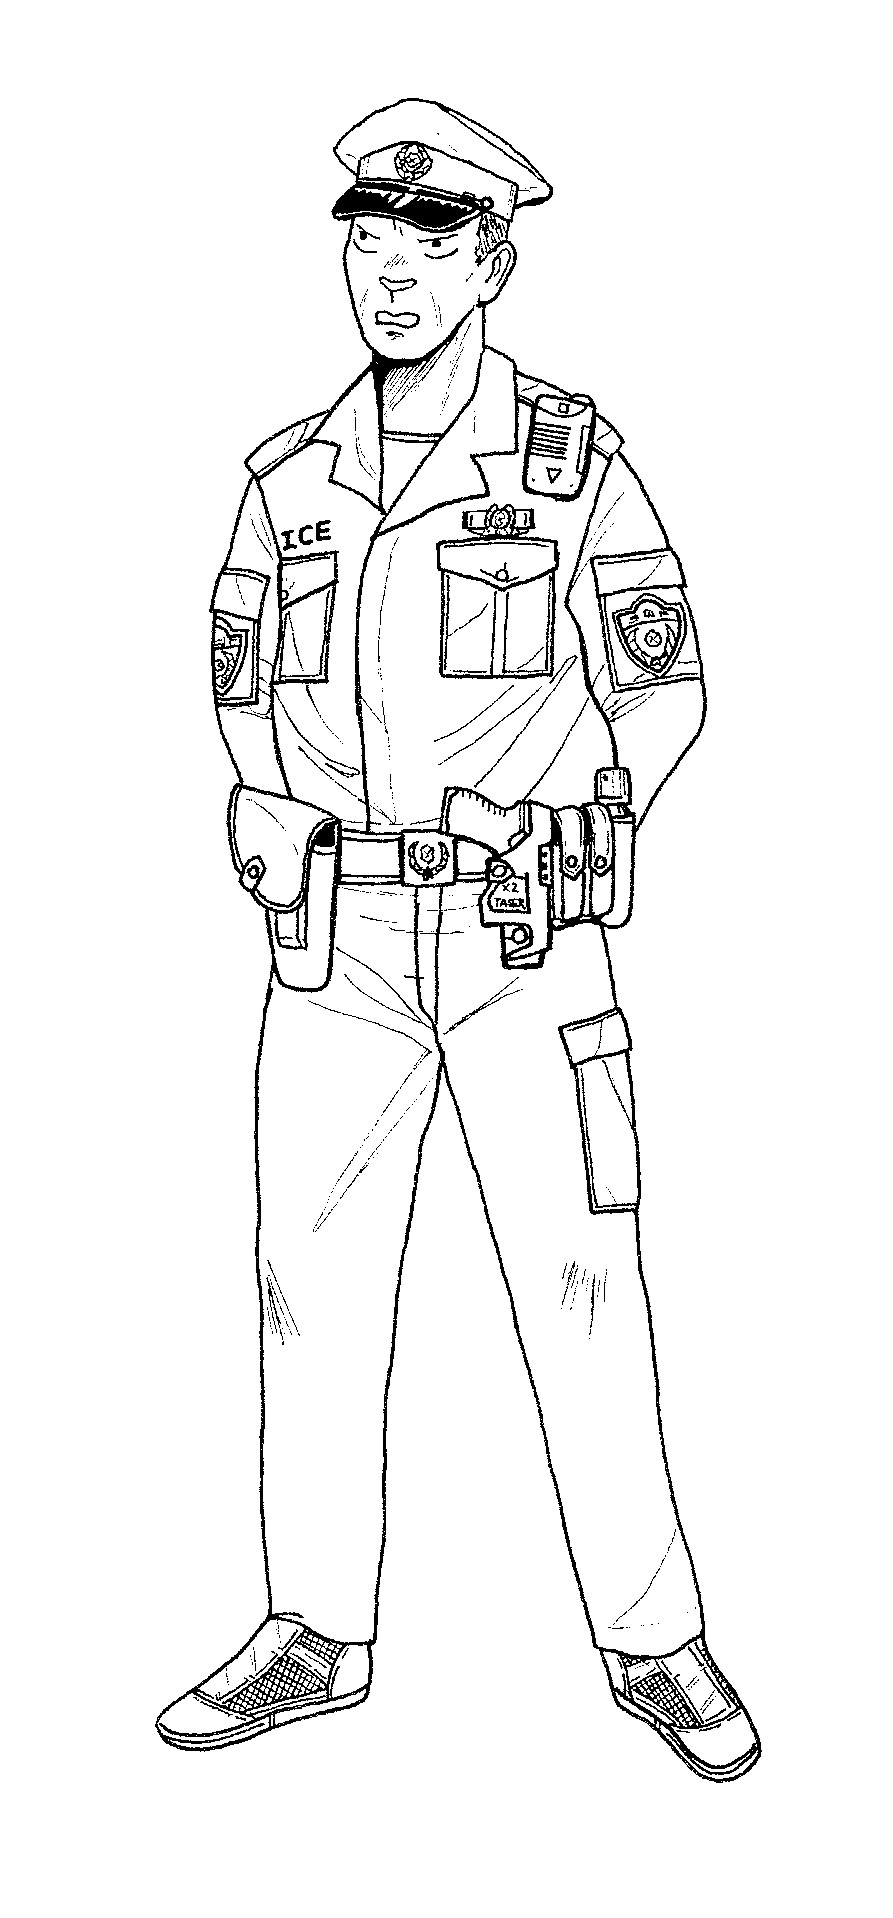 policeman coloring pages - photo#25